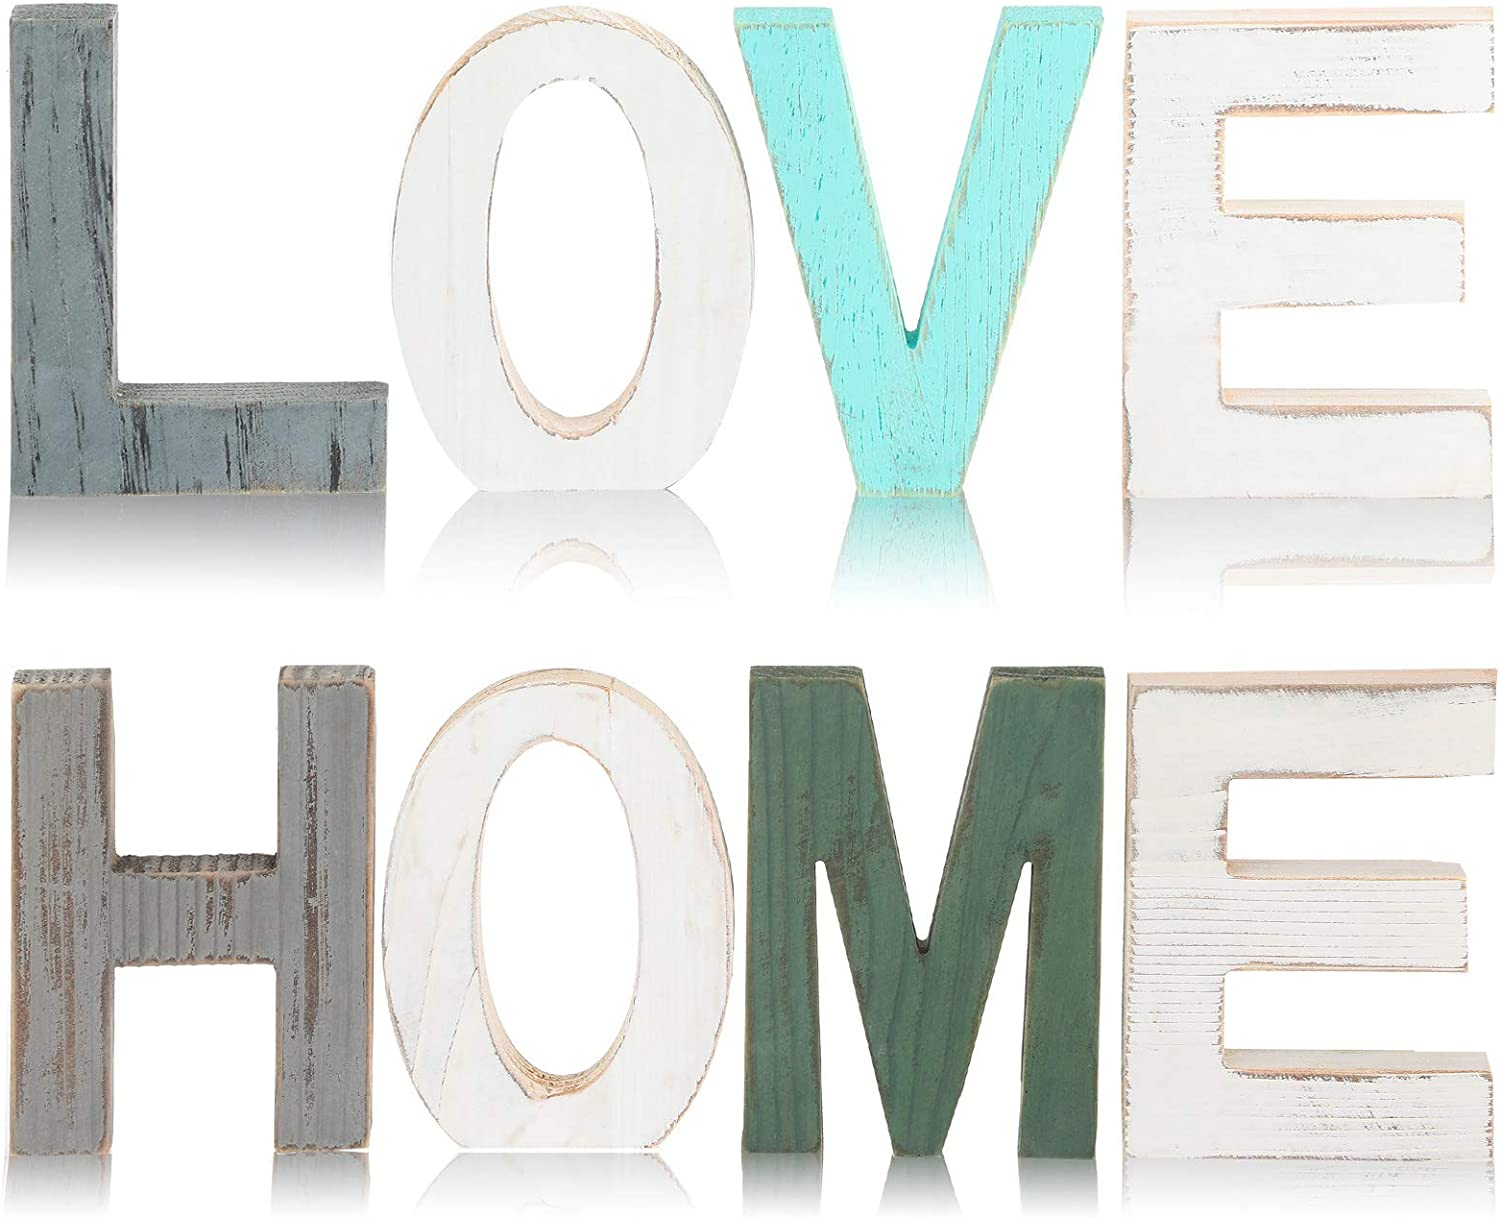 8 Pieces Rustic Wooden Love and Home Letter Wooden Signs Set Home Freestanding Decorative Word Signs Love Wooden Blocks for Home Living Room and Wall Decor